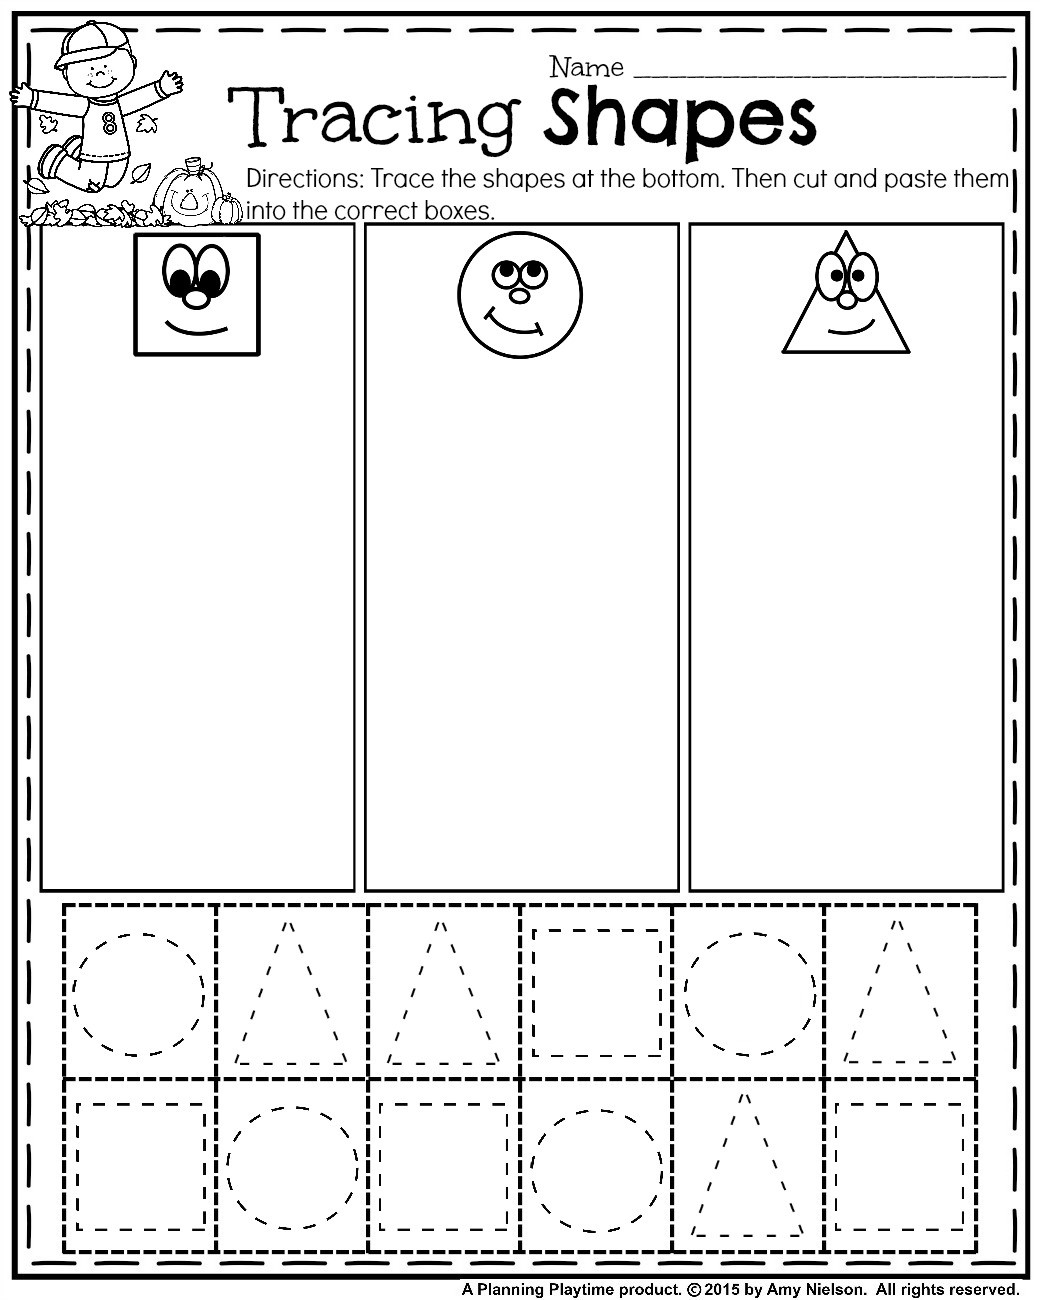 Sorting Shapes Worksheets First Grade Worksheet Lesson Plan for Elementary Grade Christmas